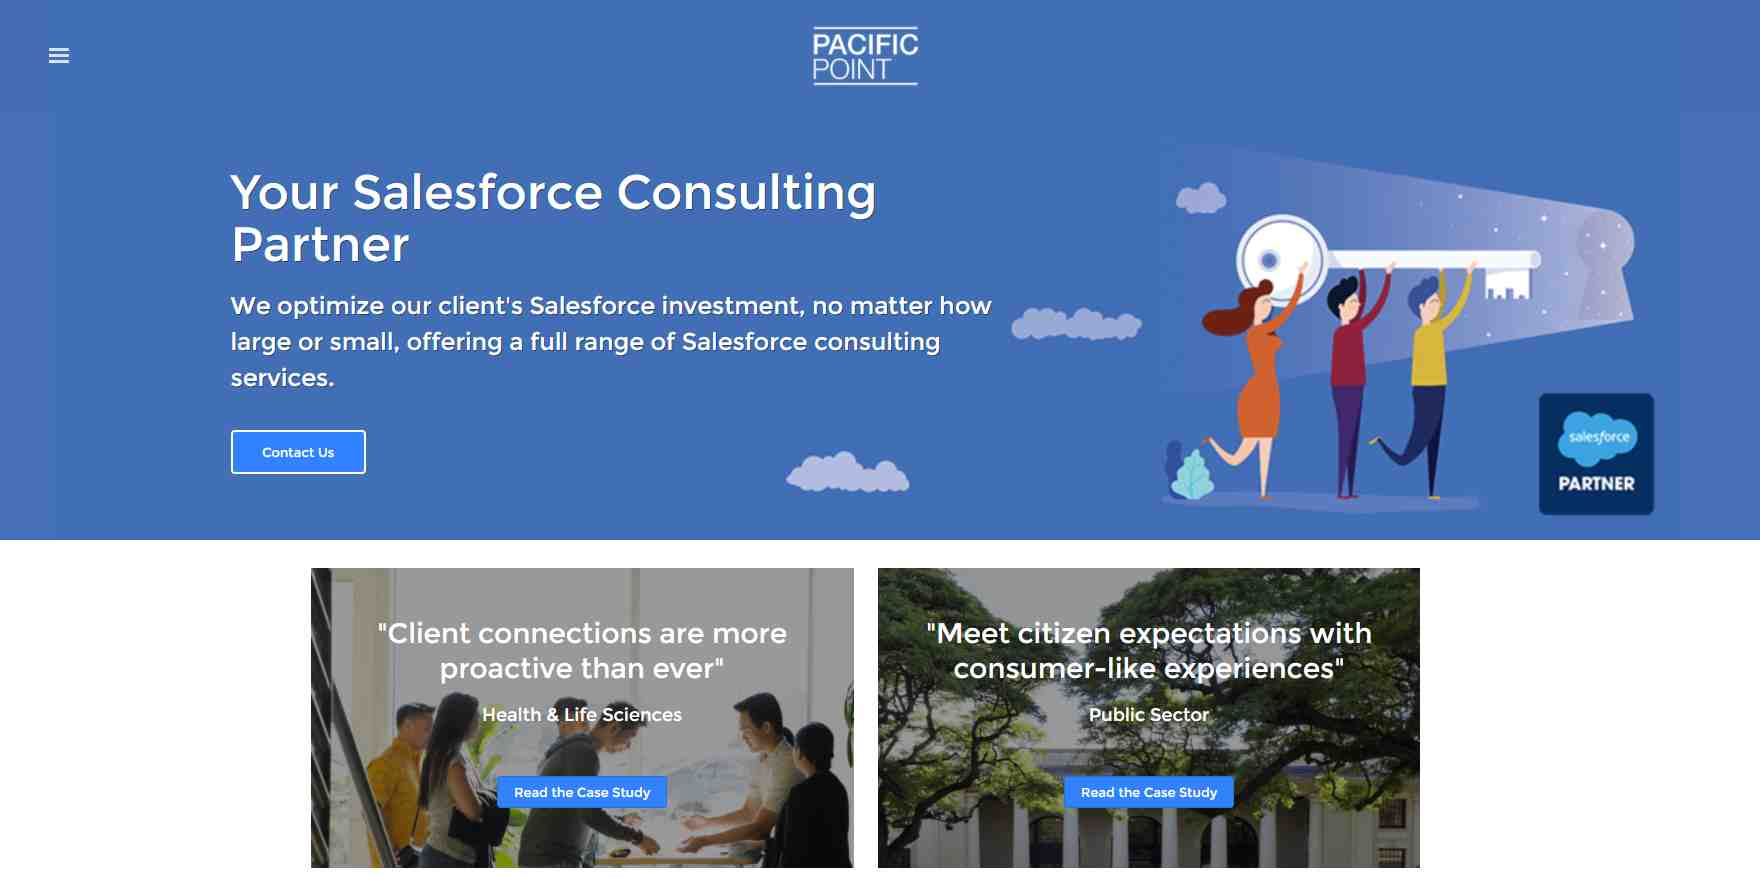 pacific point Top Salesforce Consultants in Singapore